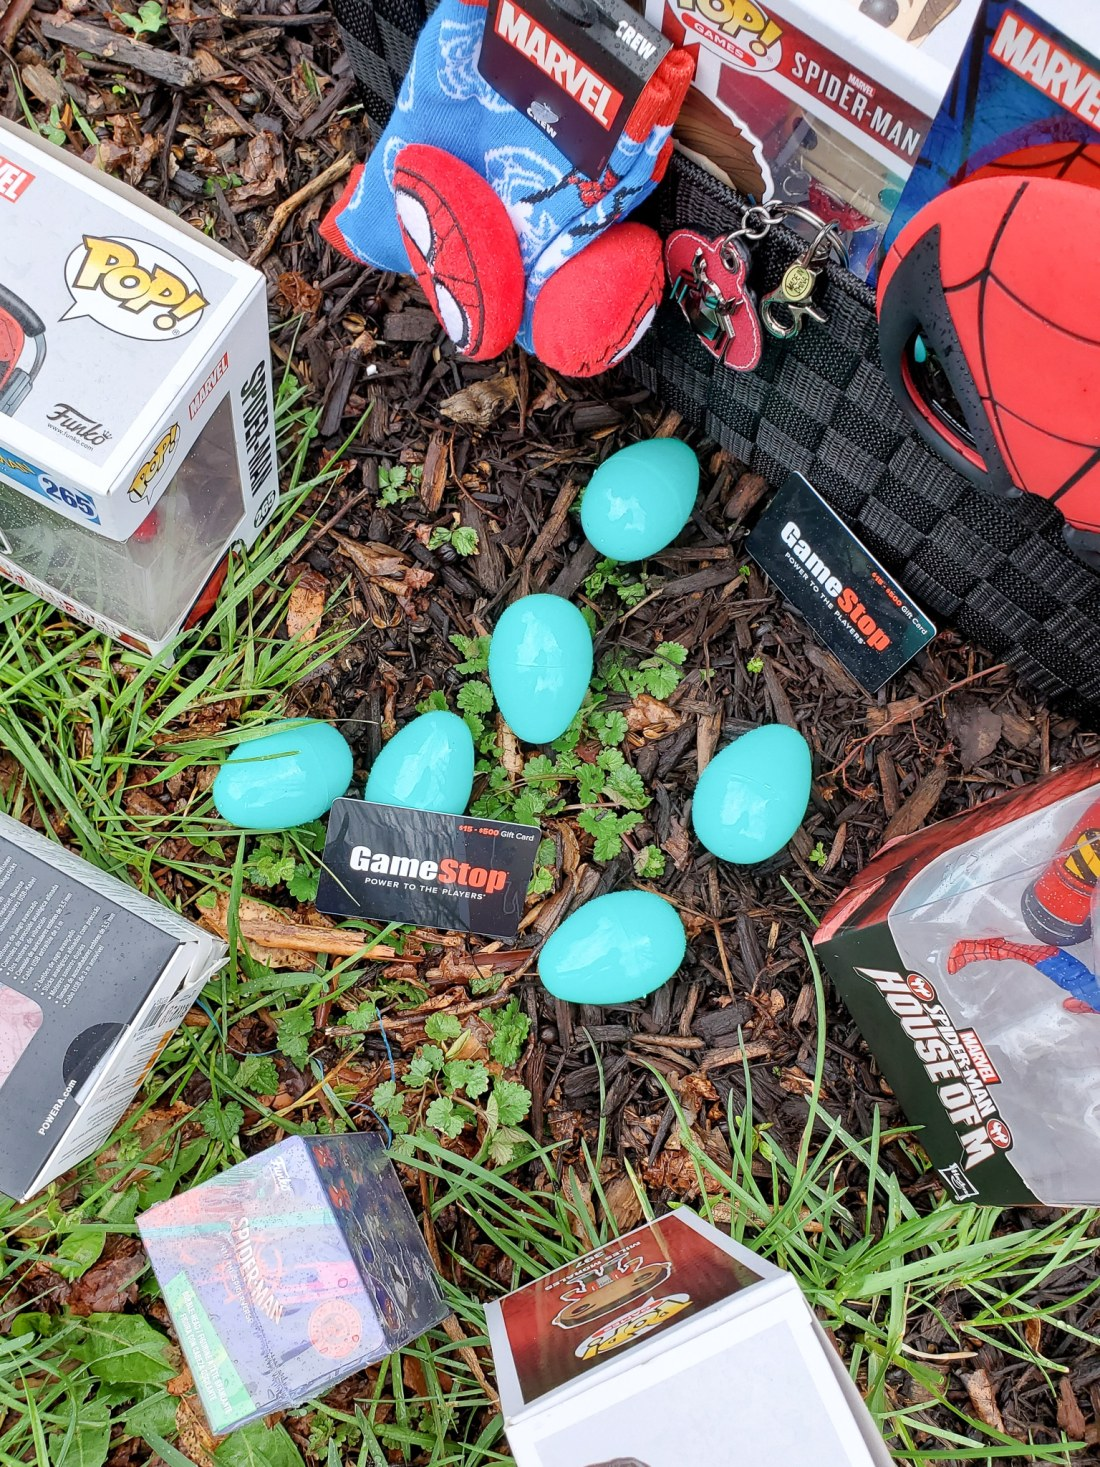 Spider-Man Easter Basket from GameStop. Build your very own Spider-Man themed Easter Basket with a little help from your One-Stop-Shop GameStop. Gamestop has everything you need to build the ultimate Easter Basket for your teenager.